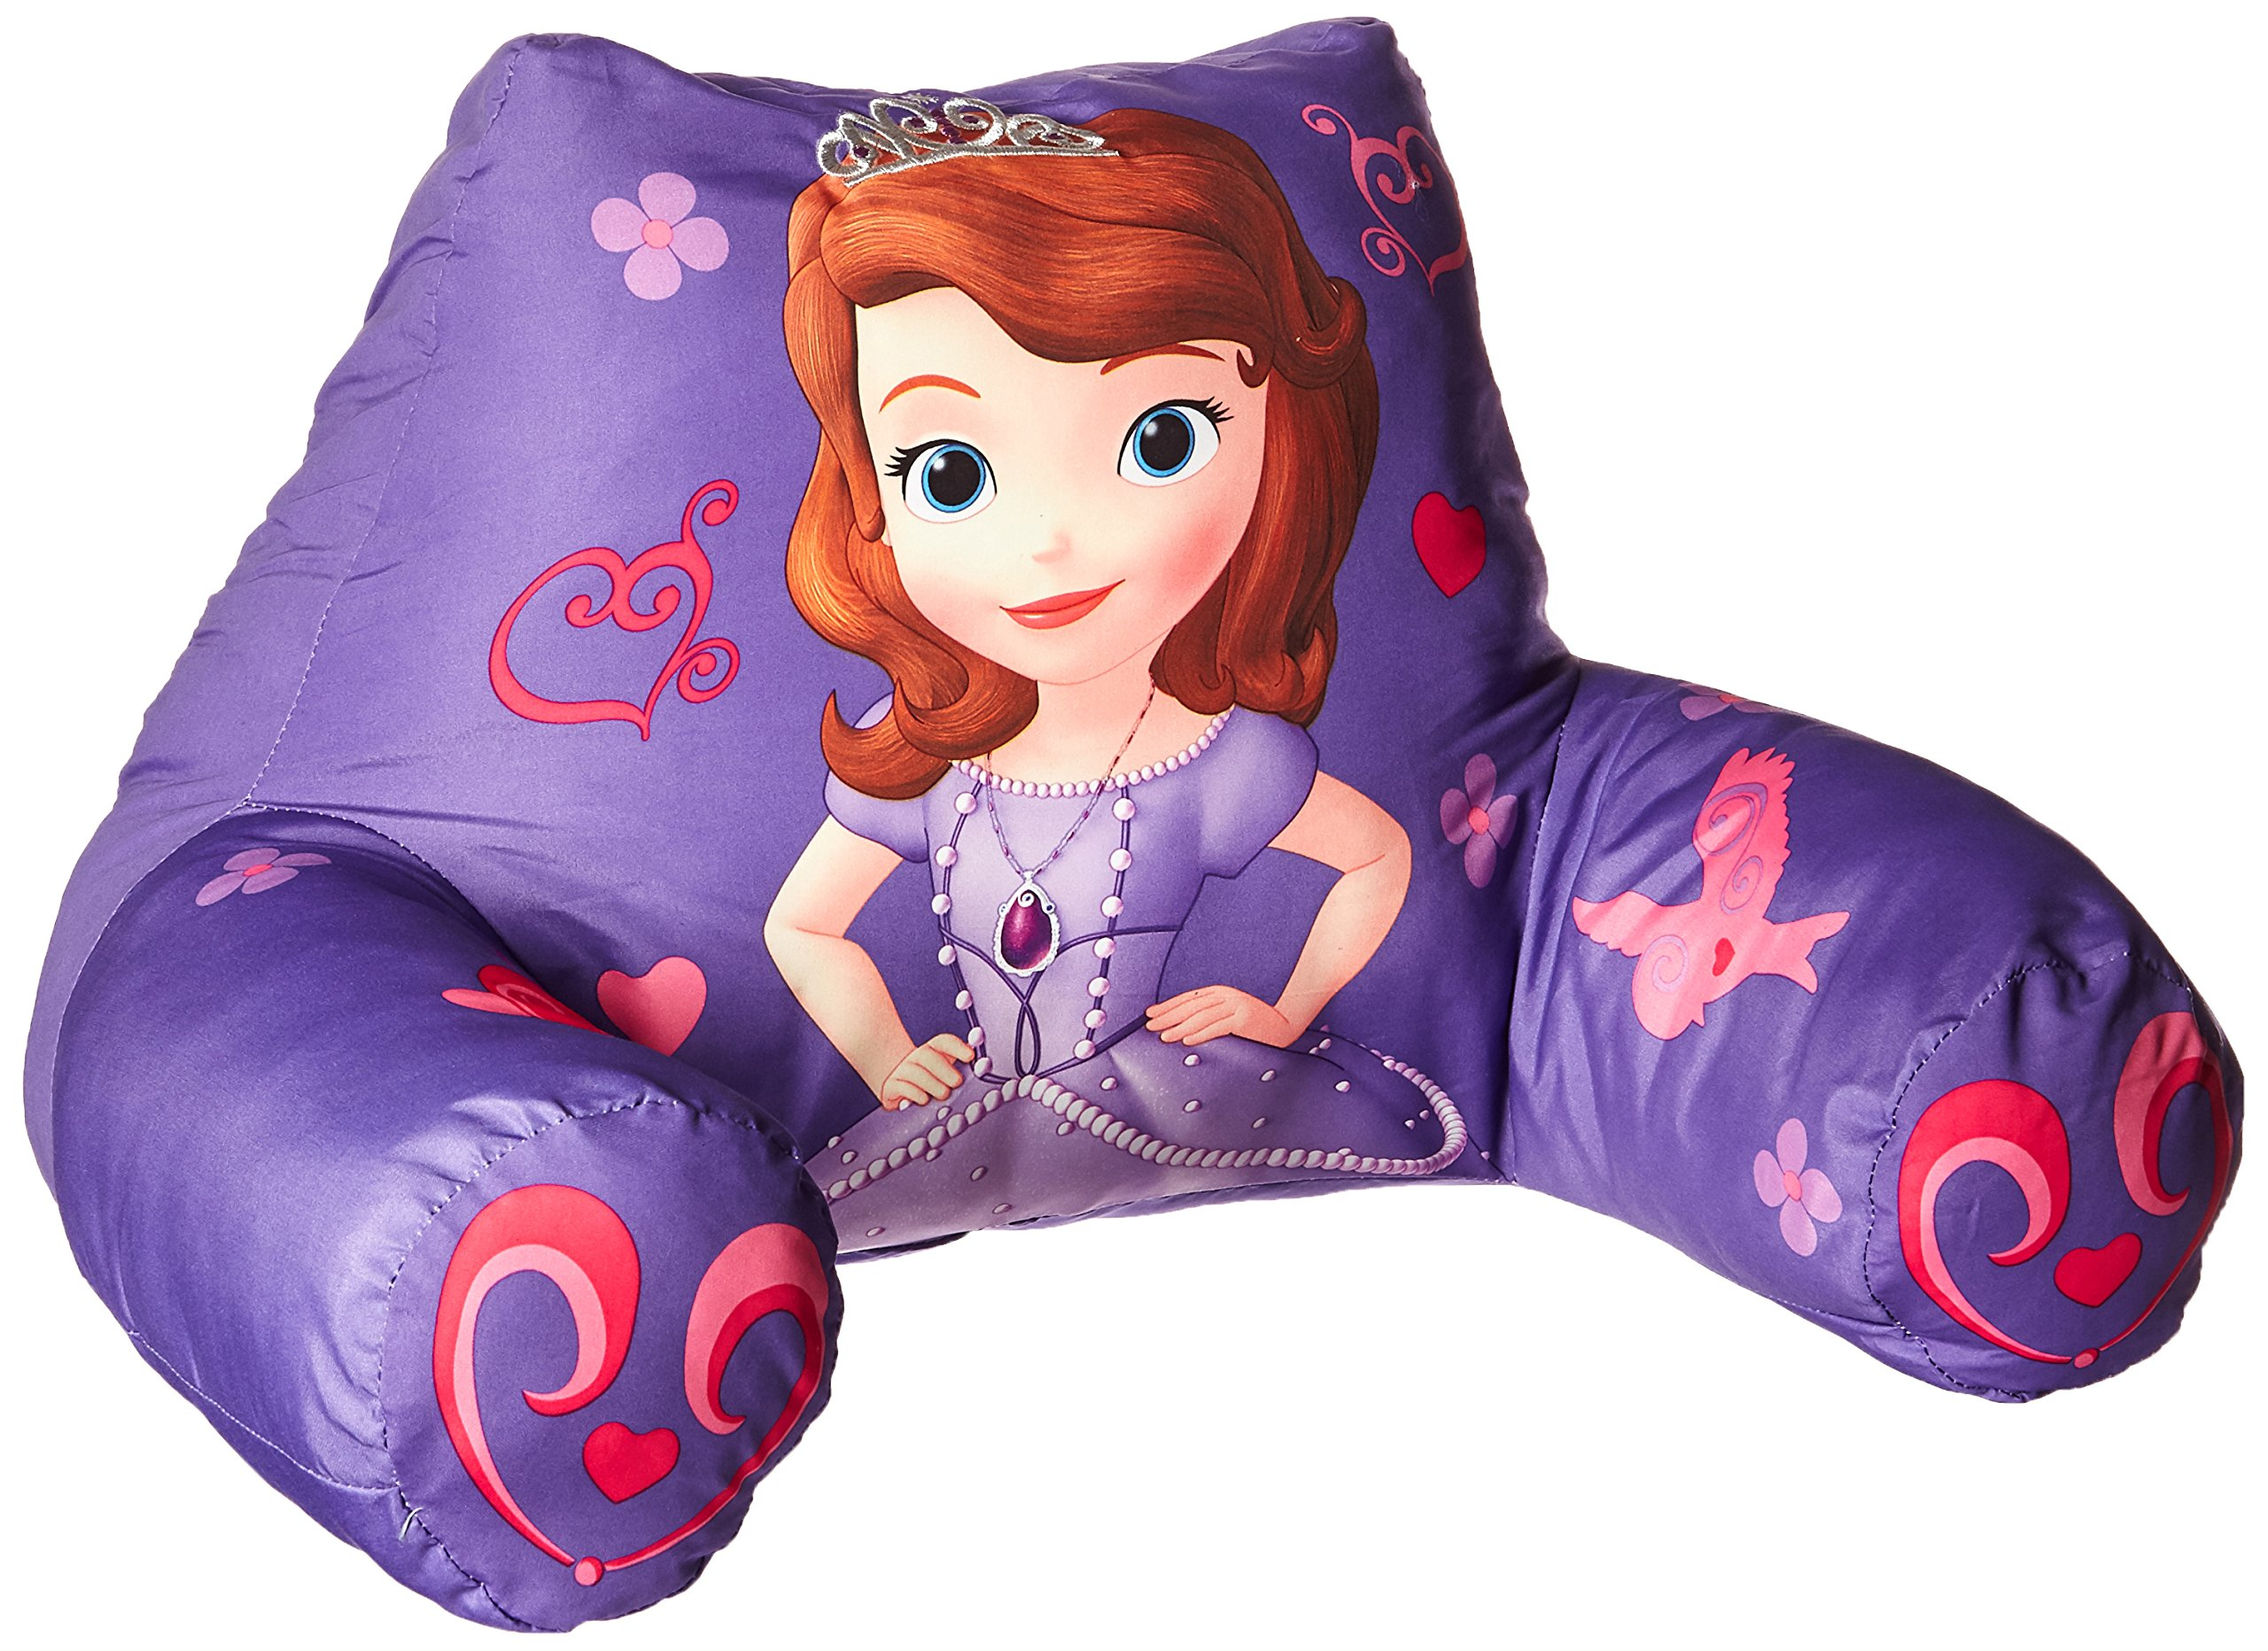 Disney Junior Sofia The First Bed Rest by Jay Franco